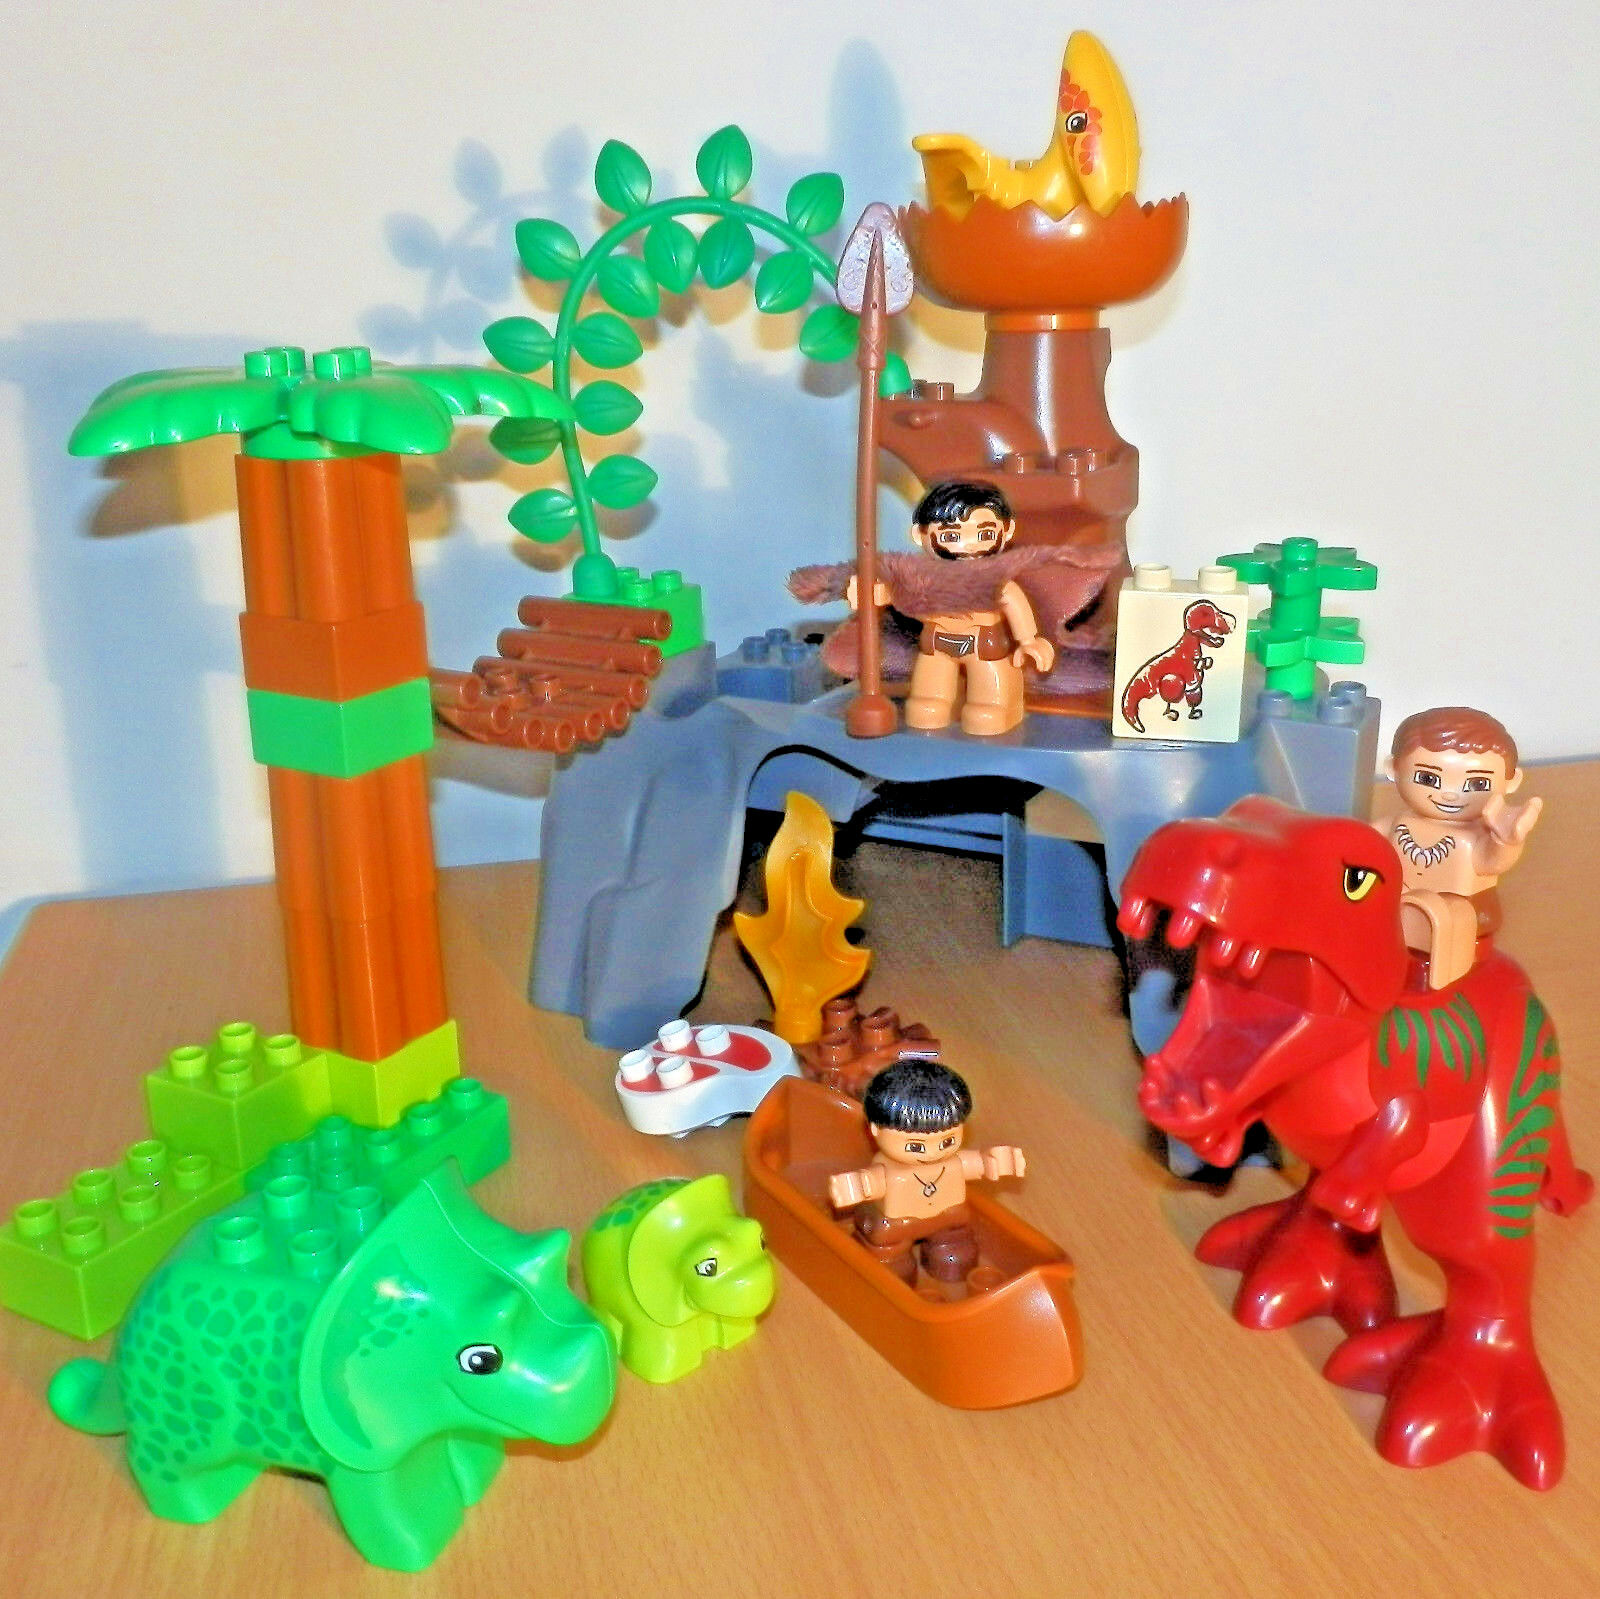 LEGO DUPLO Dino Valley - Dinosaurs World Cavemen T-Rex Jurassic Park (set 5598)